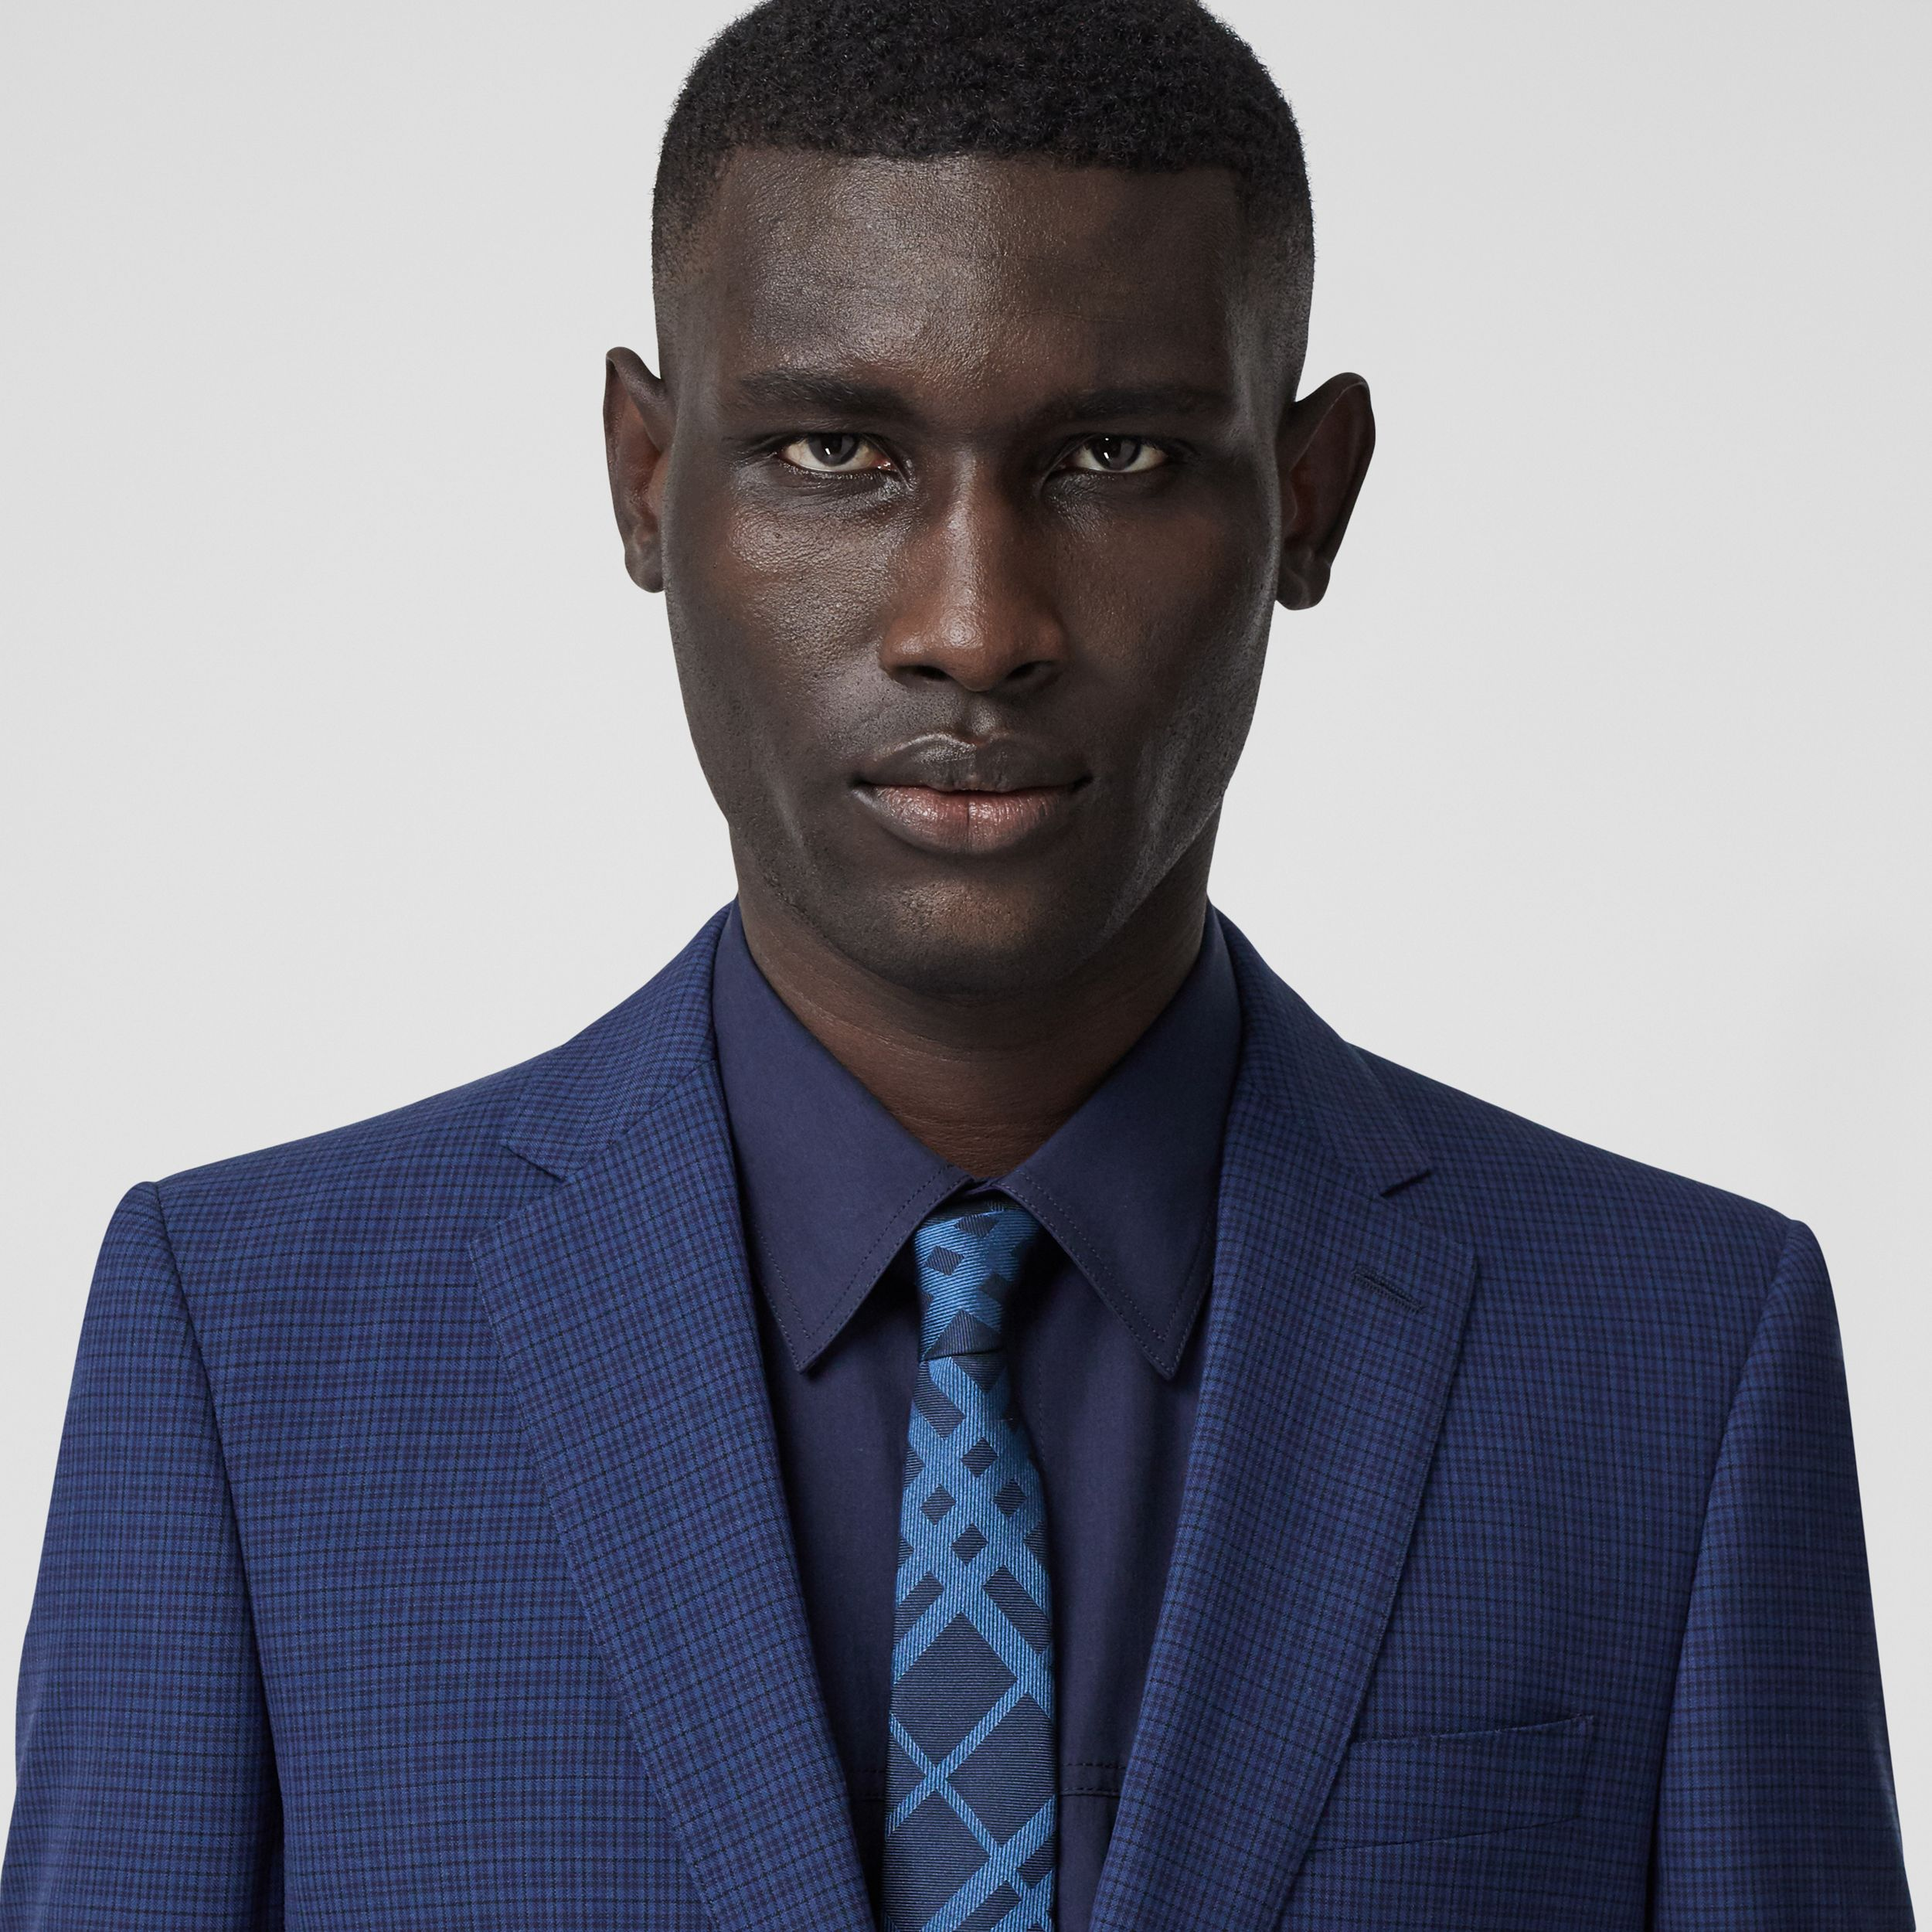 Classic Cut Check Silk Jacquard Tie in Ink Blue - Men | Burberry - 3